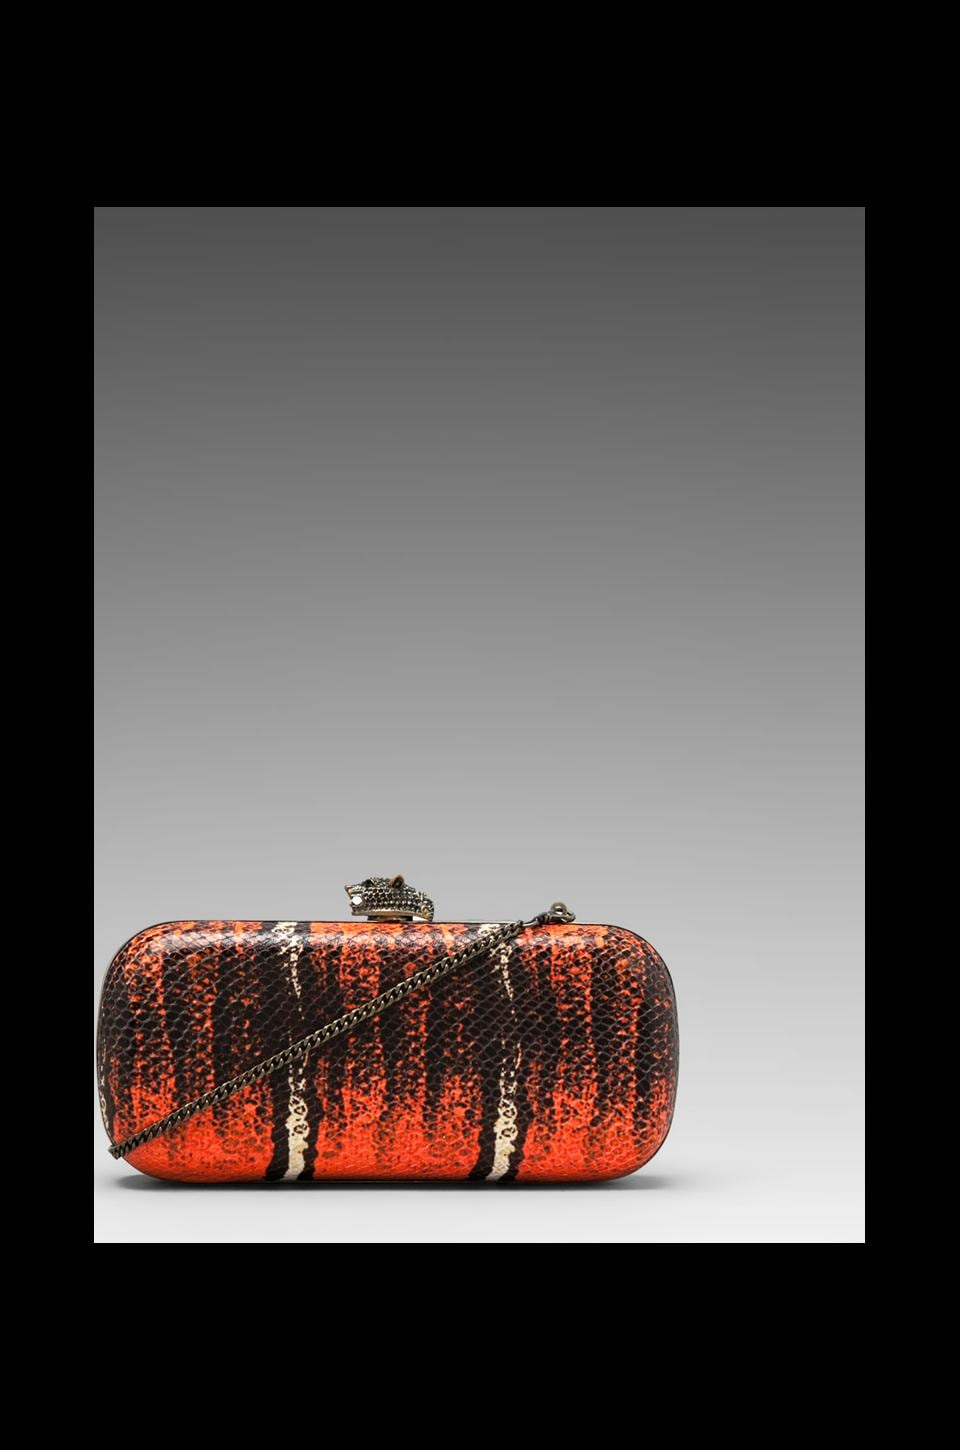 House of Harlow Adele Clutch in Coral/Brass